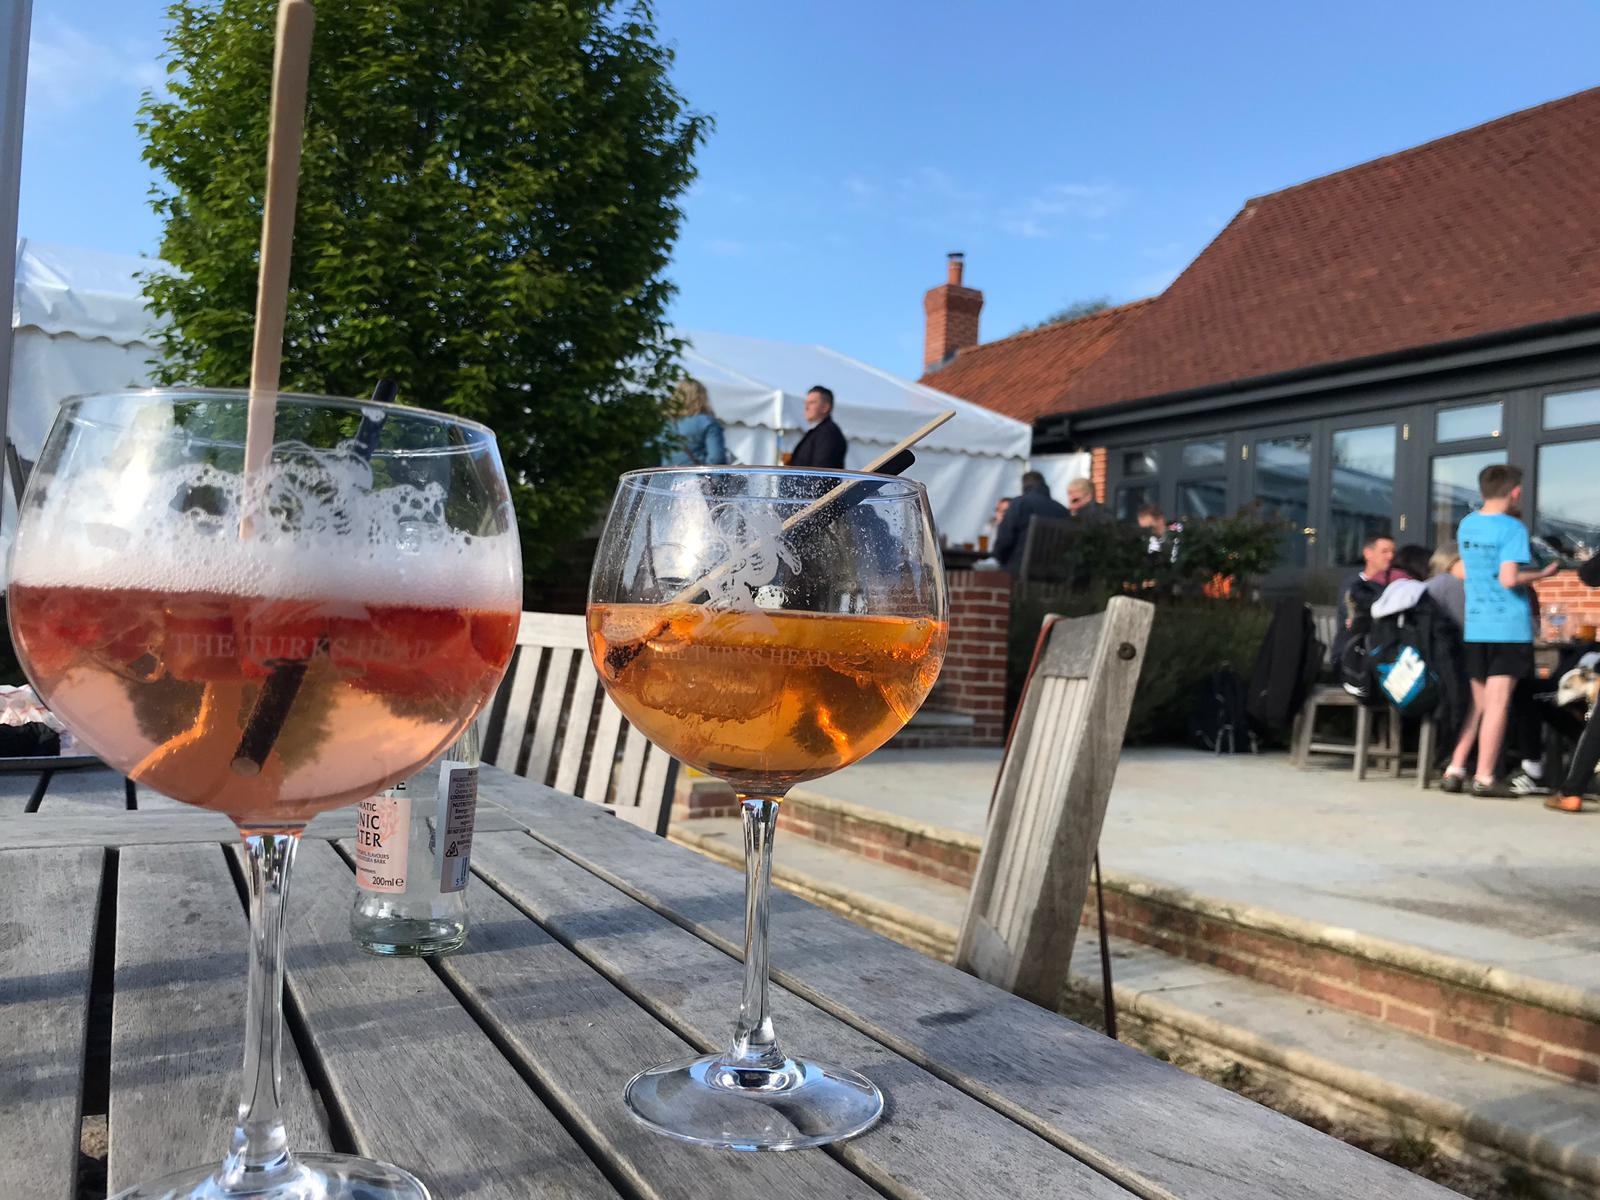 The Turks Head Beer, Cider & Gin Festival